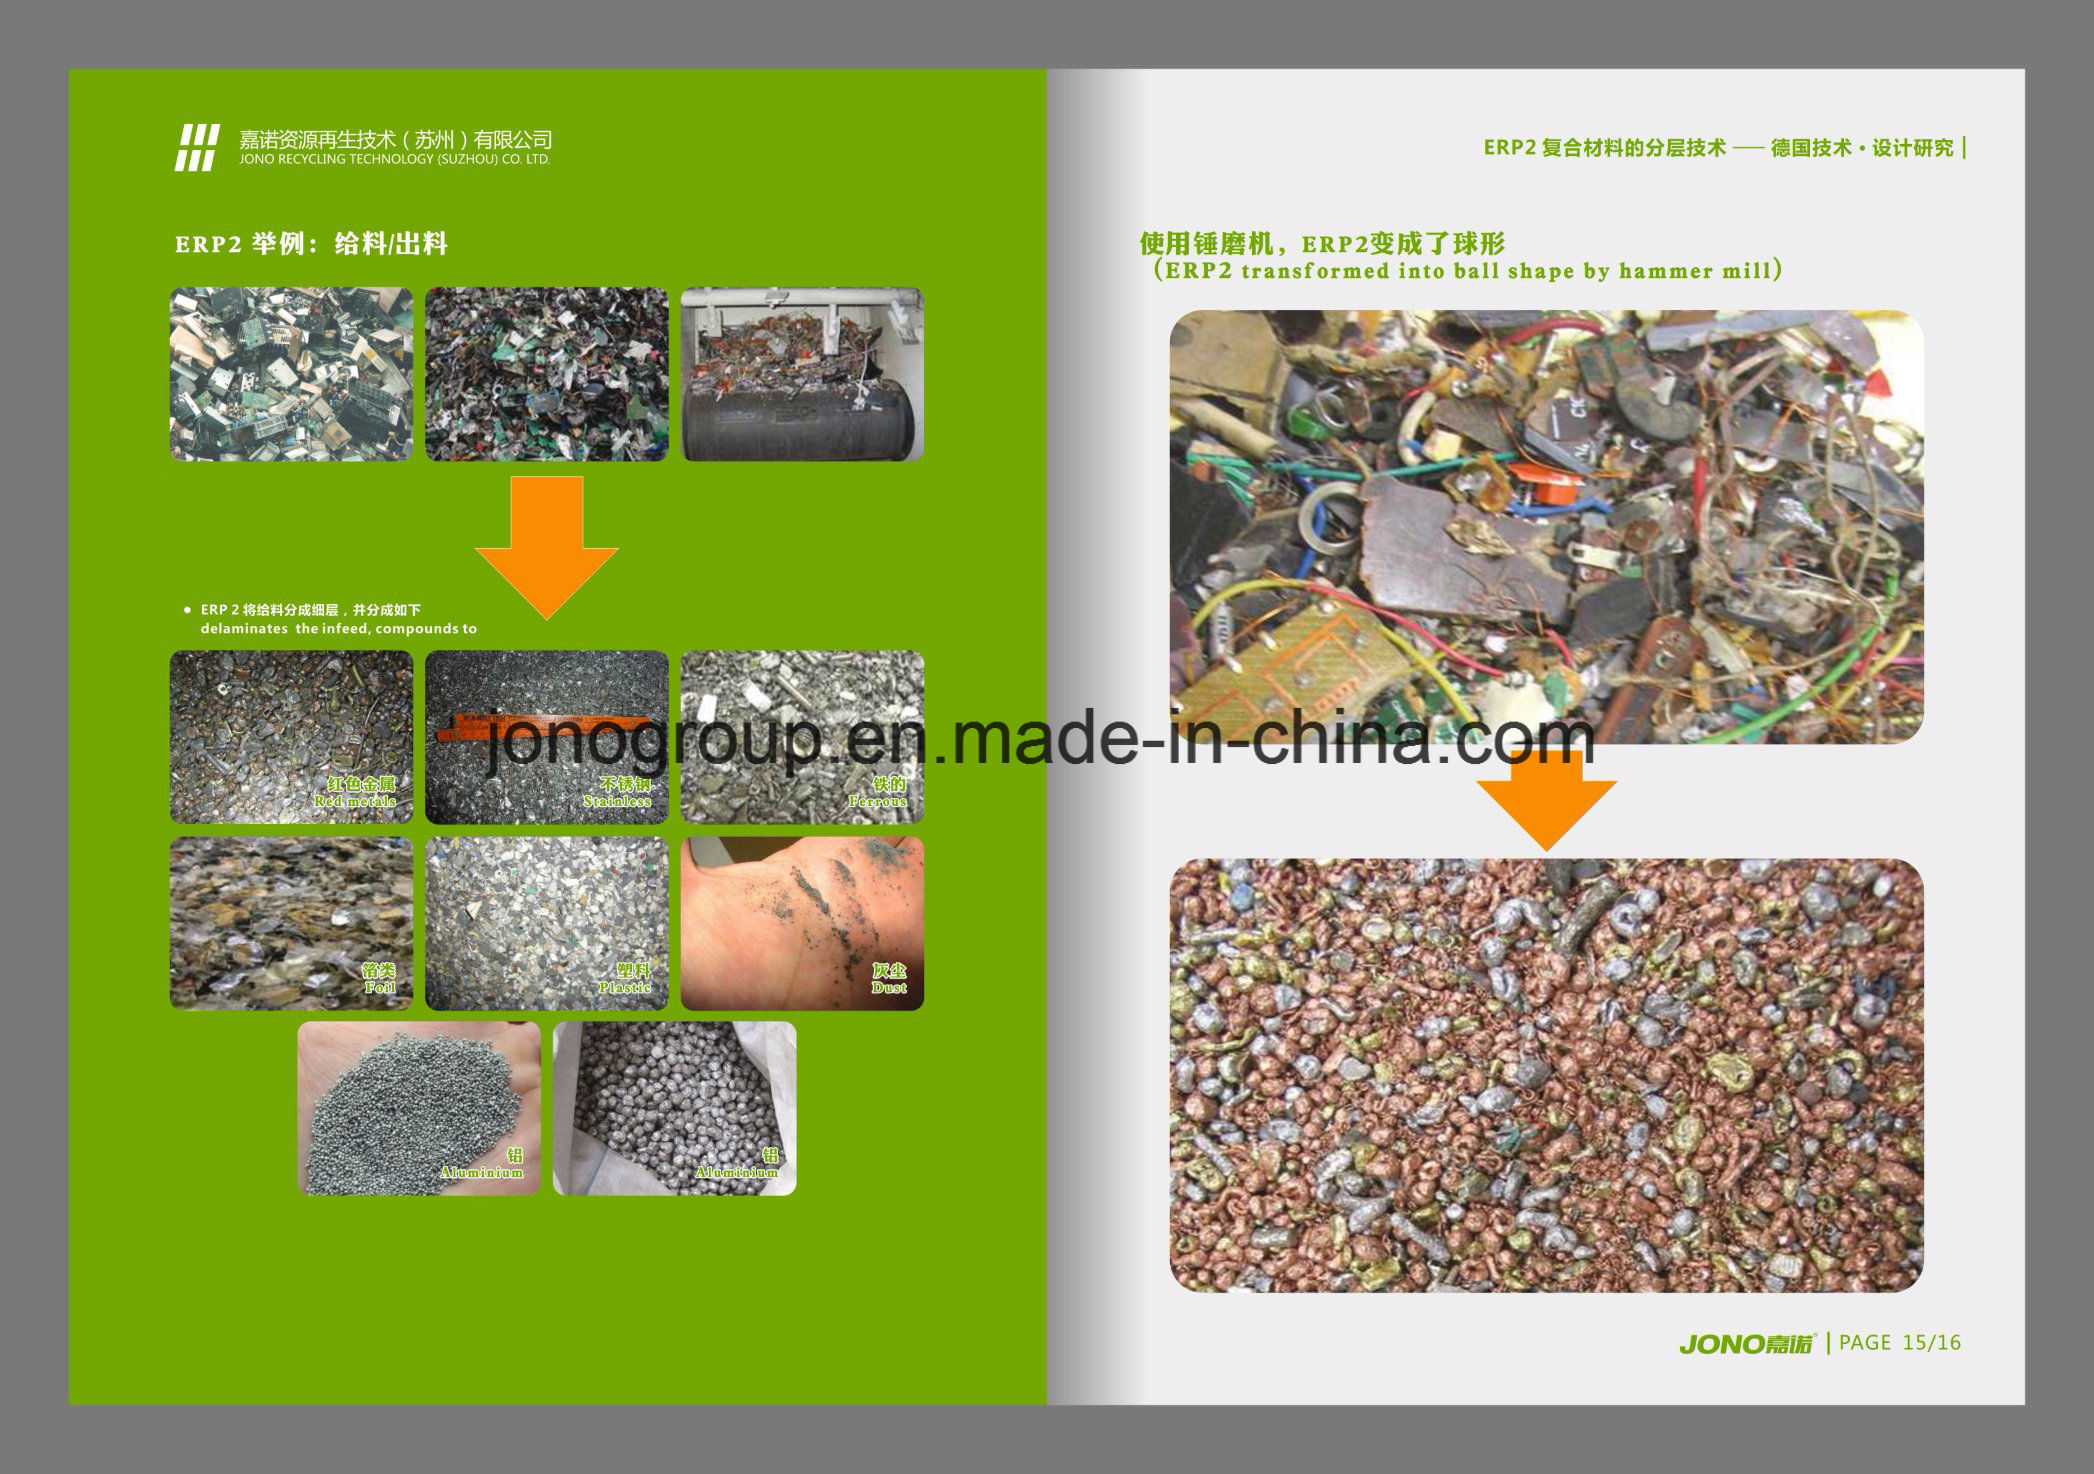 E-Waste Recycling System for Weee